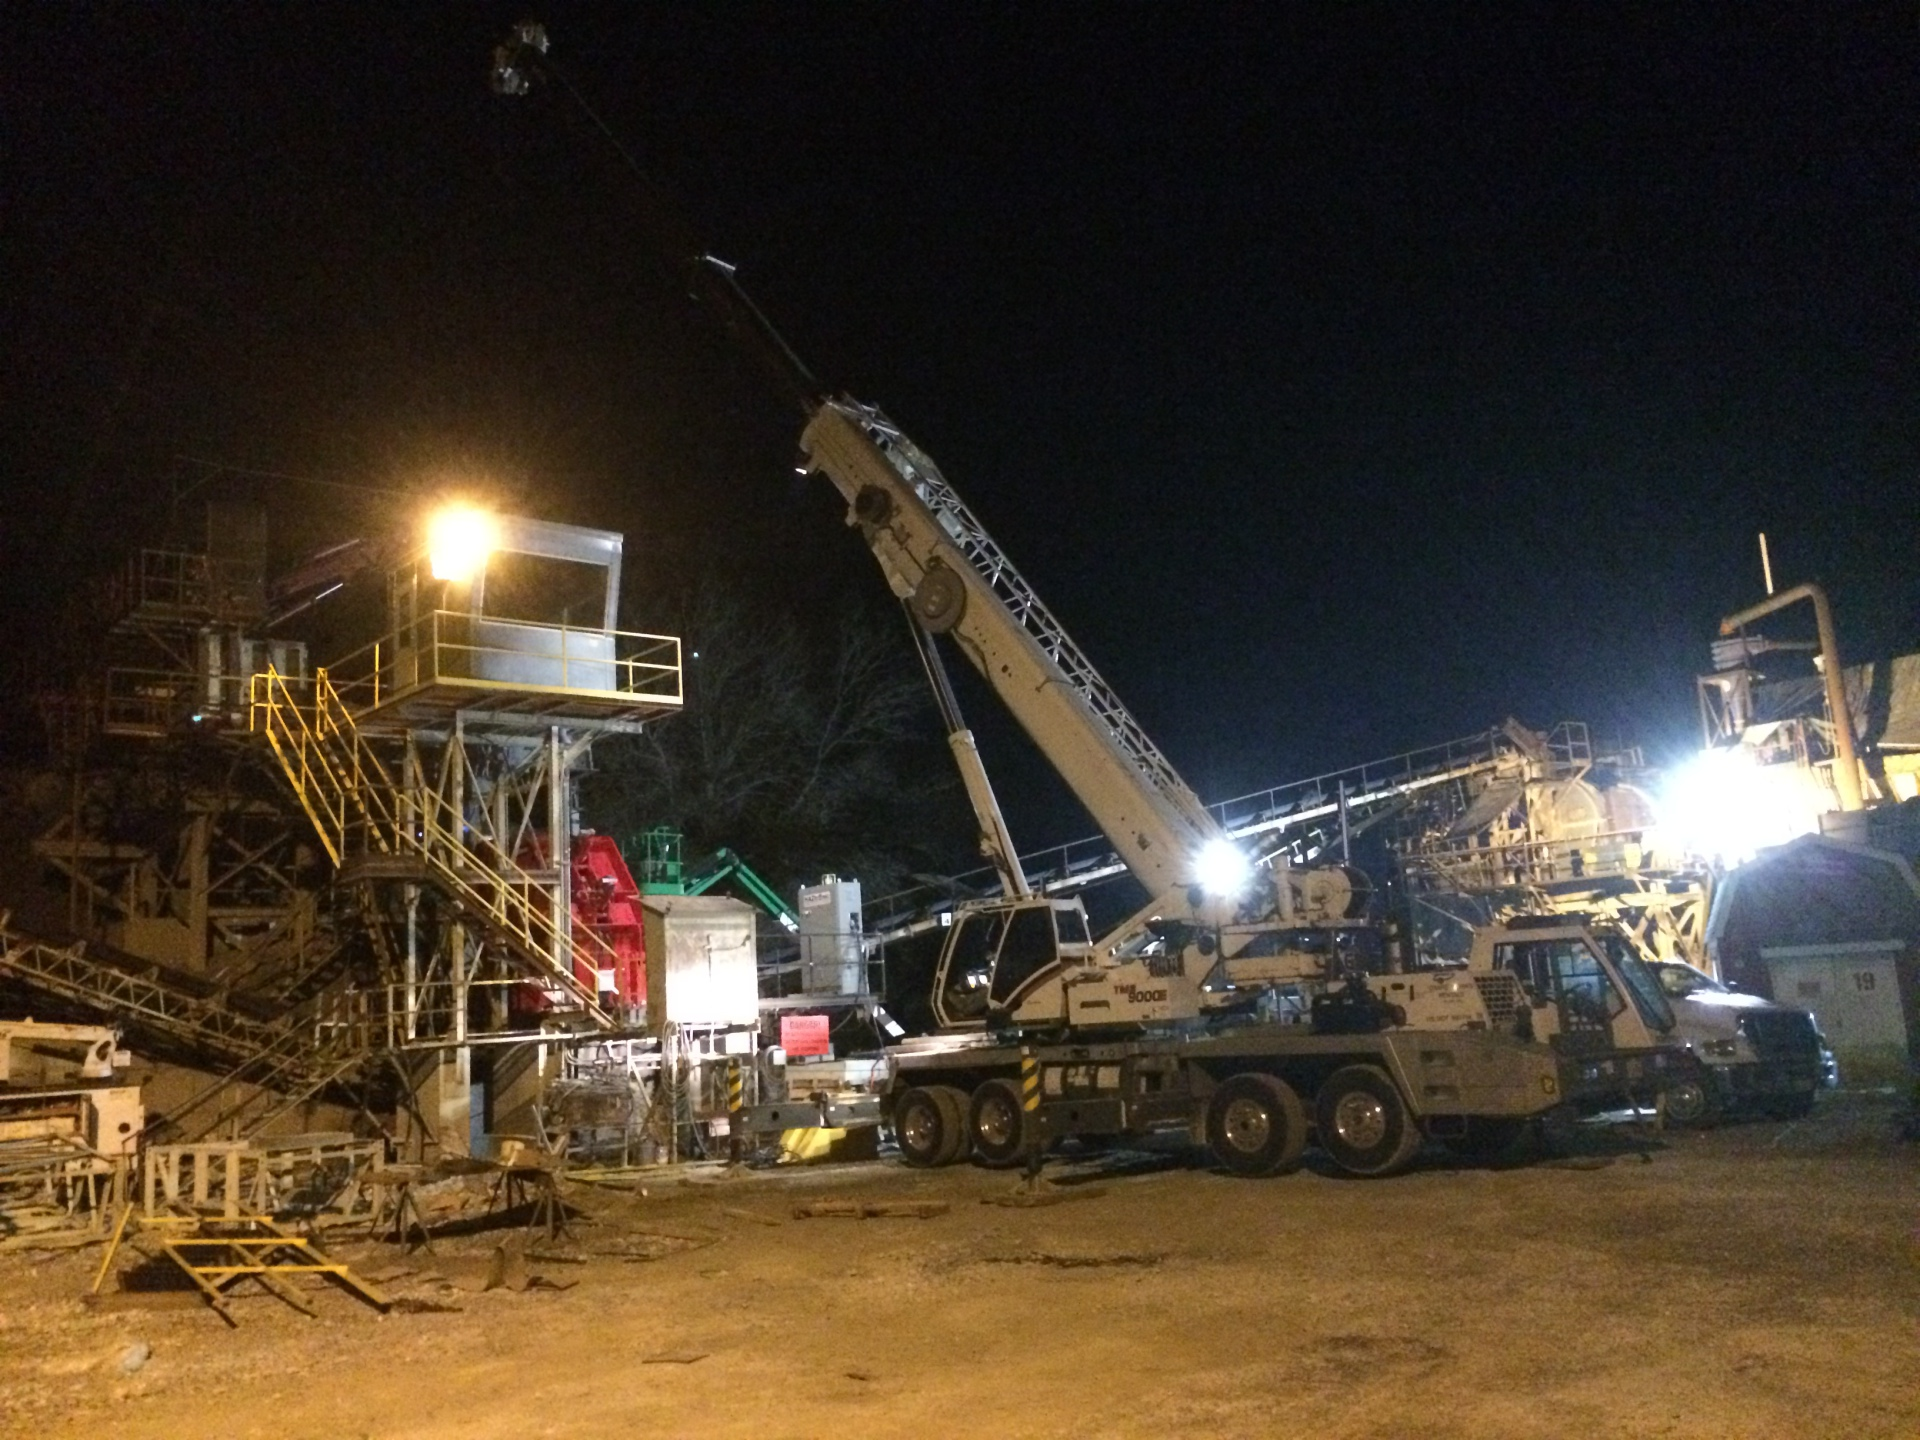 Night Work at Quarry